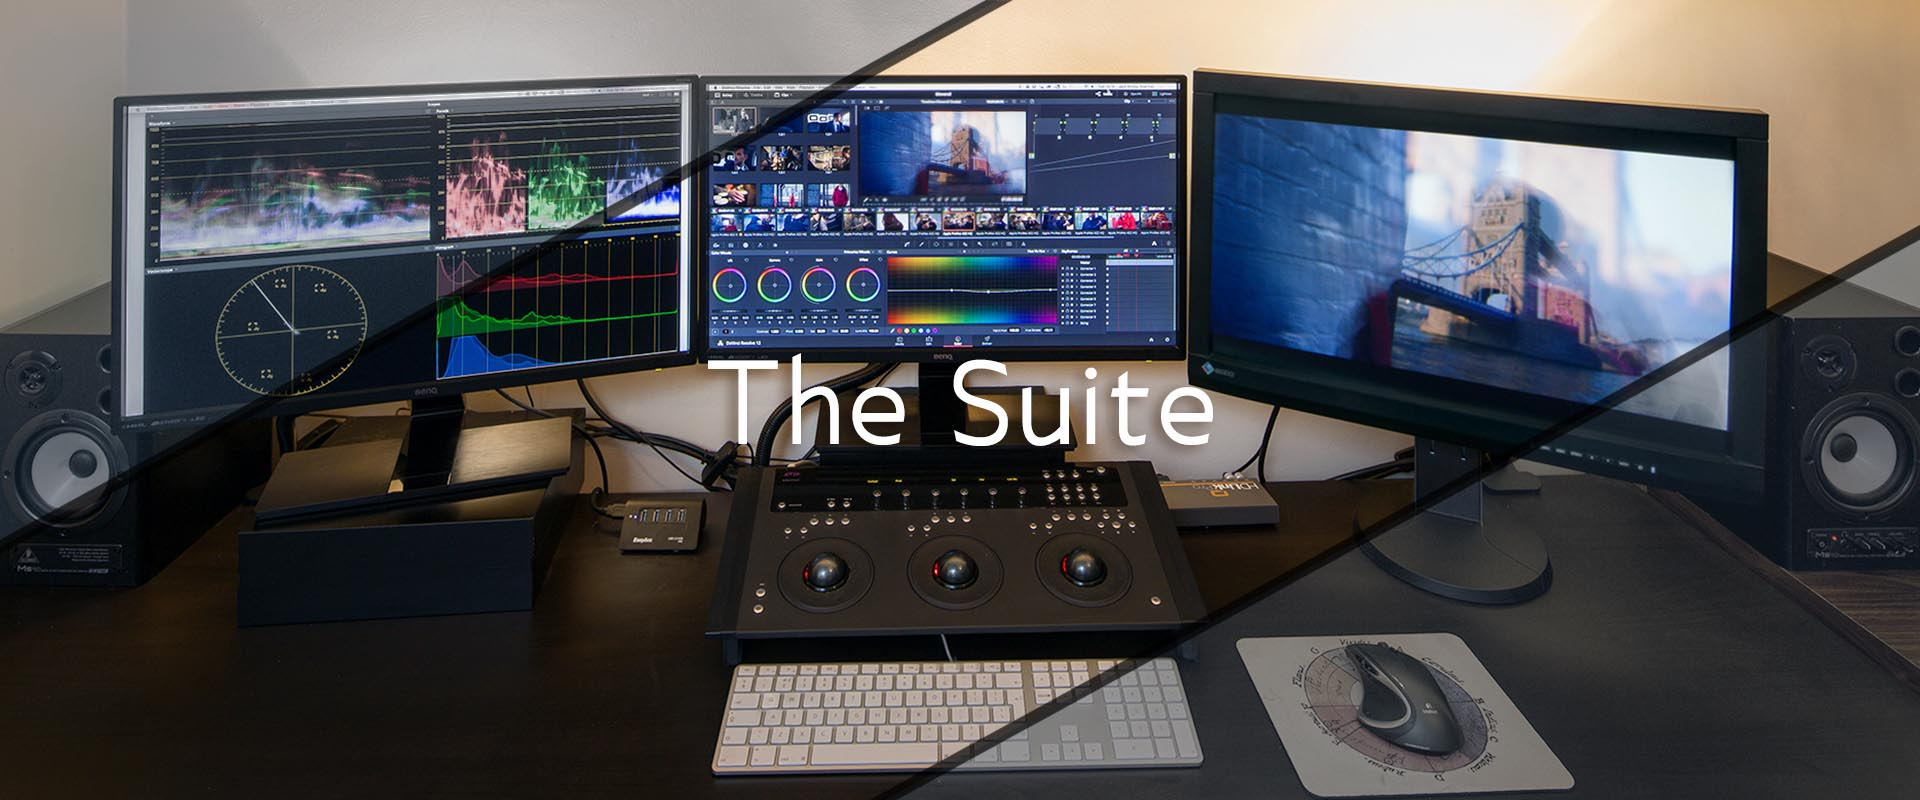 The Suite 2015a